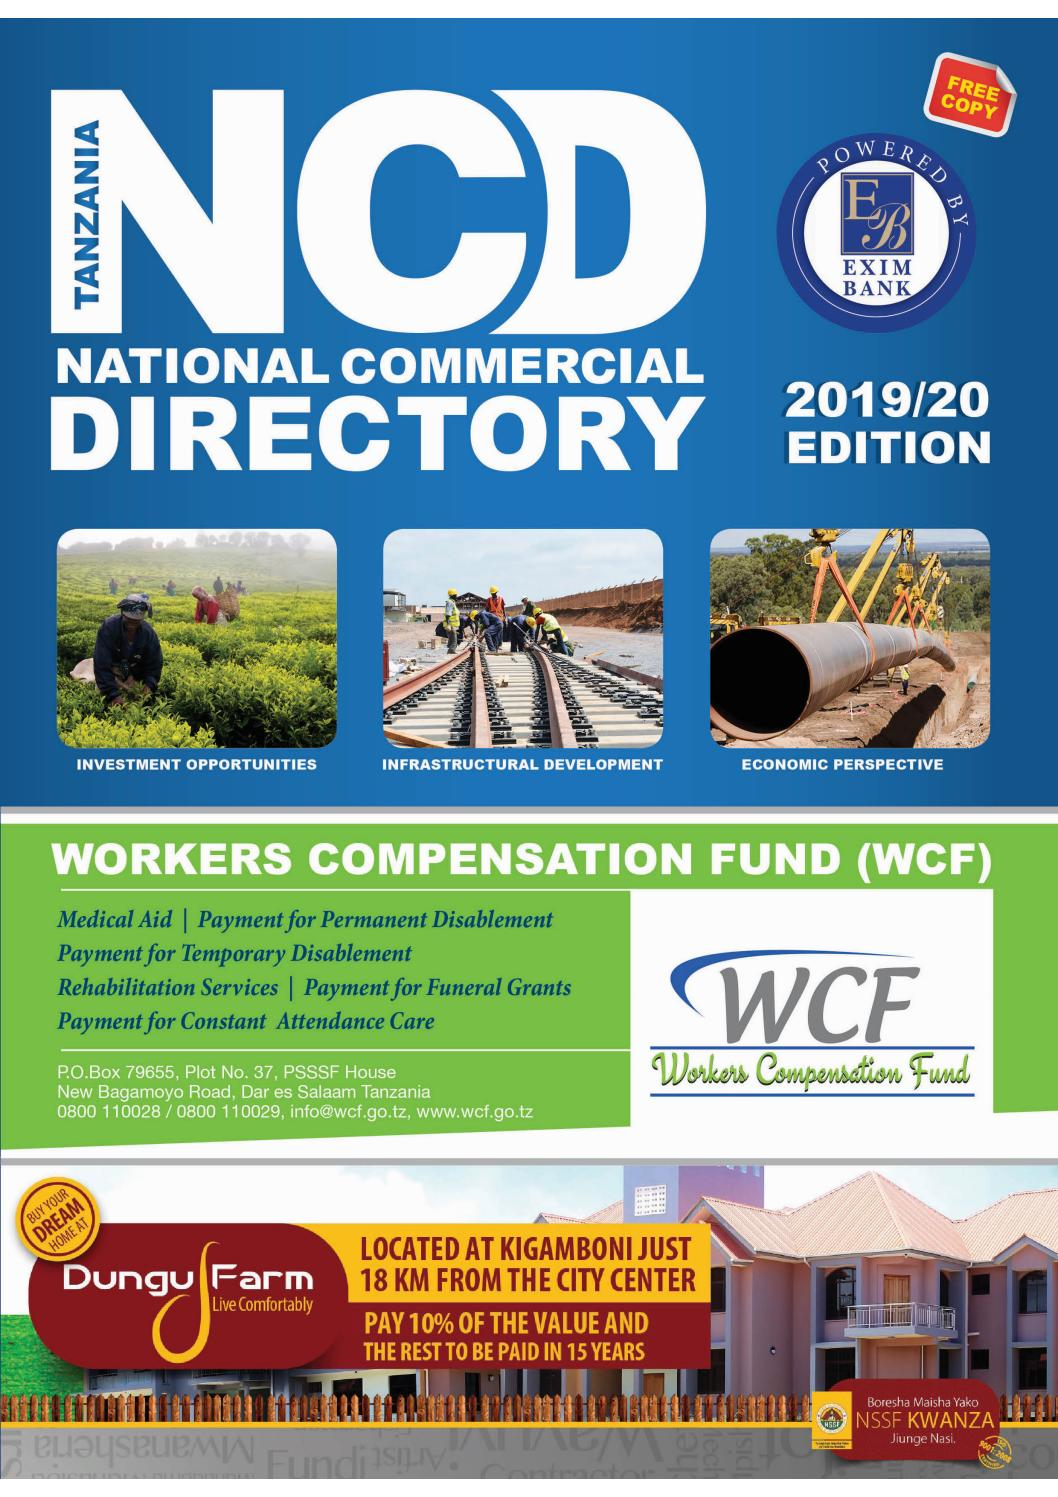 Tanzania National Commercial Directory Issue 002 2019 2020 By Ncd Tanzania Directory Issuu